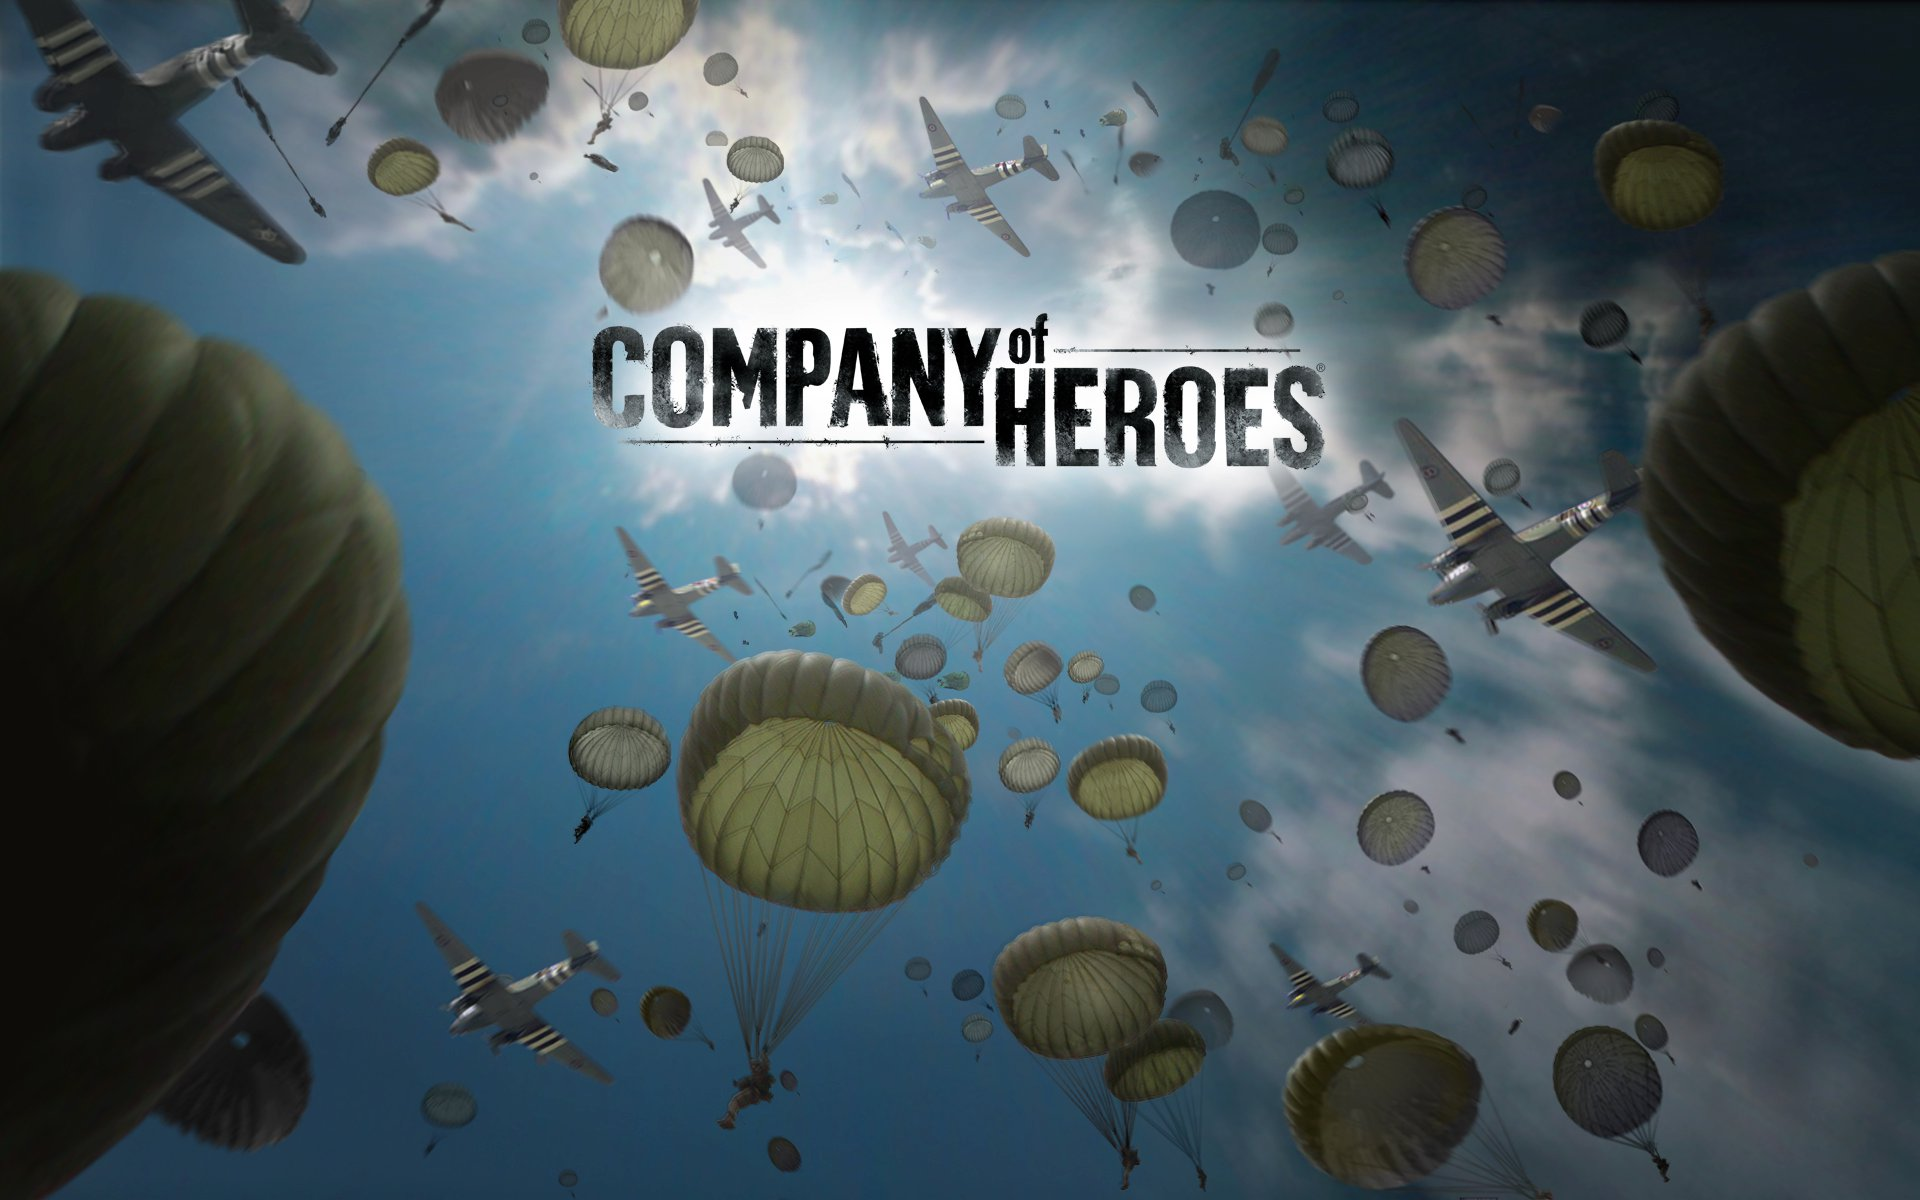 Company of Heroes Wallpapers HD Wallpapers 1920x1200